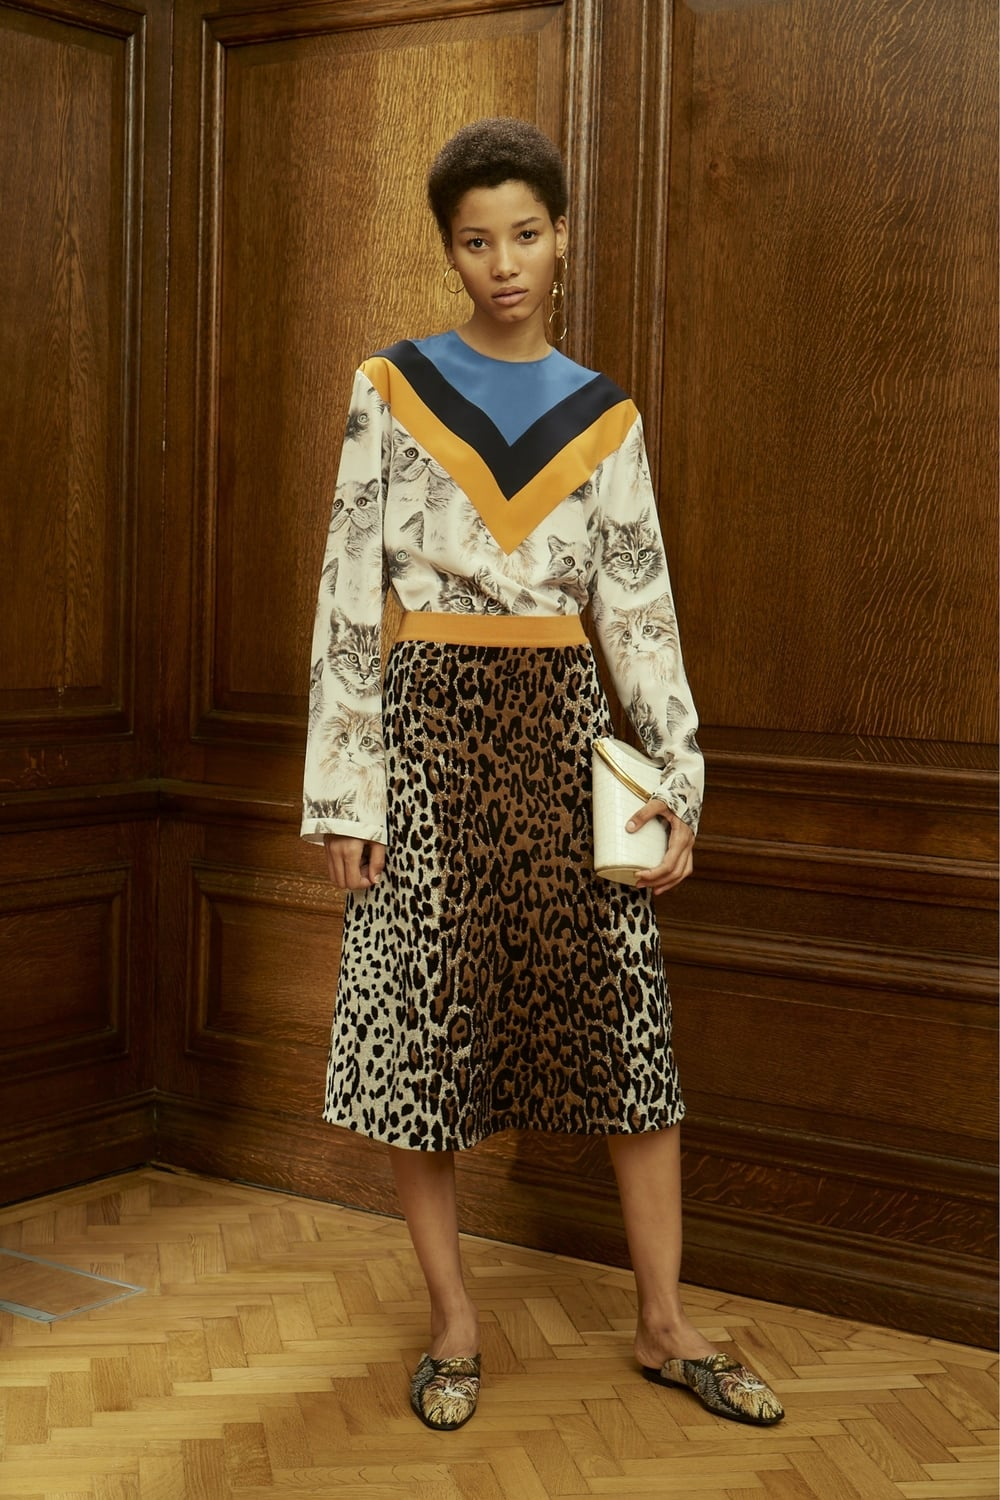 stella-mccartney-pre-fall-2016-lookbook-05.jpg